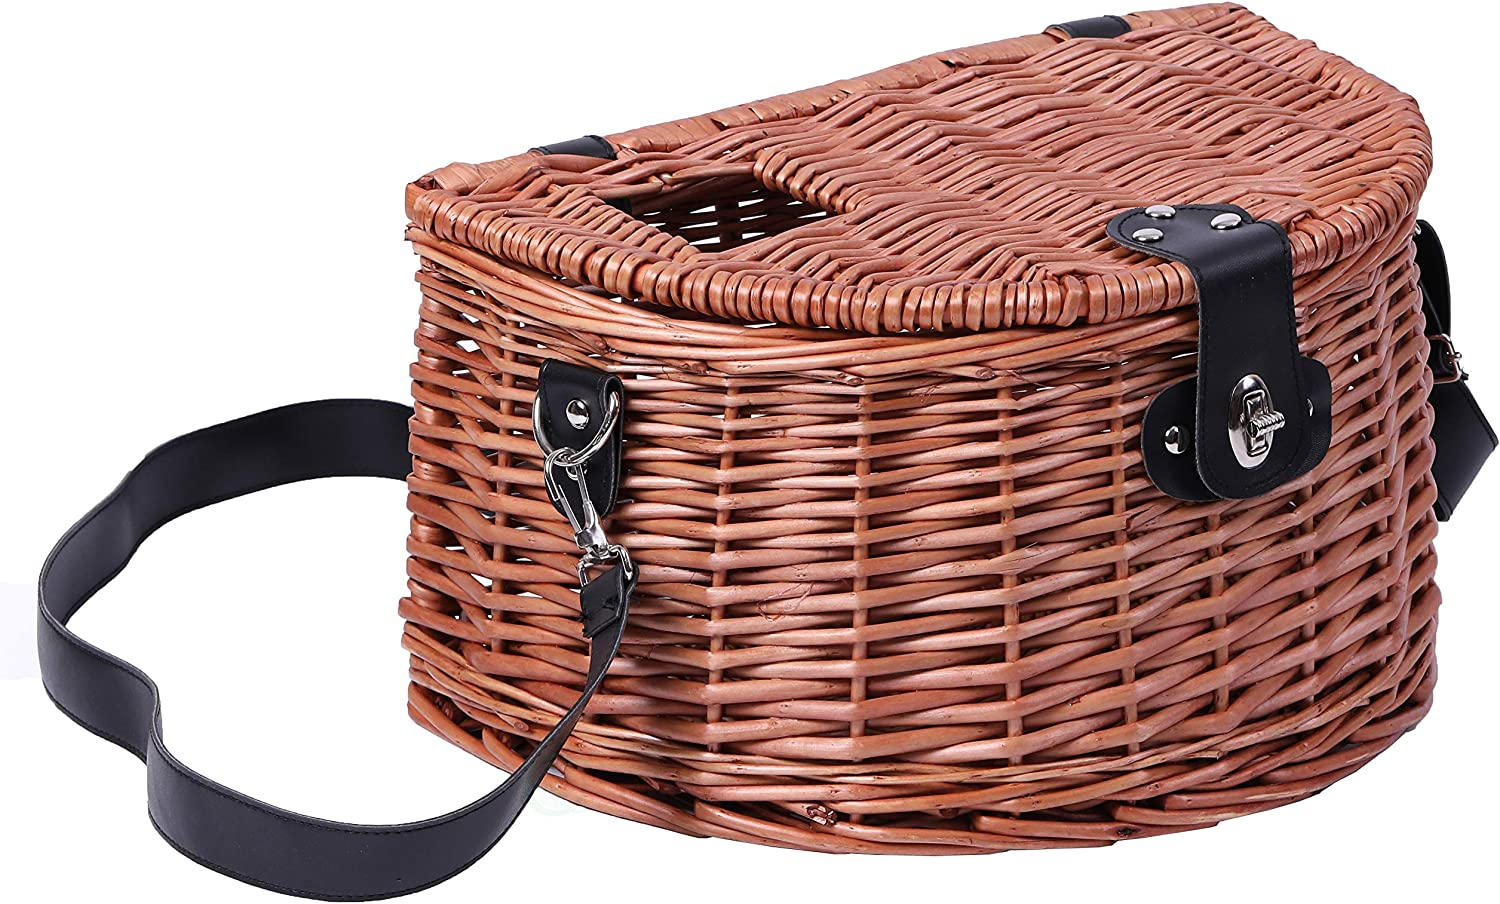 Vintiquewise Wicker Fishing Creel with Faux Leather Shoulder Shoulder Shoulder Strap B07H4Z5KPY  Jugend a3de24